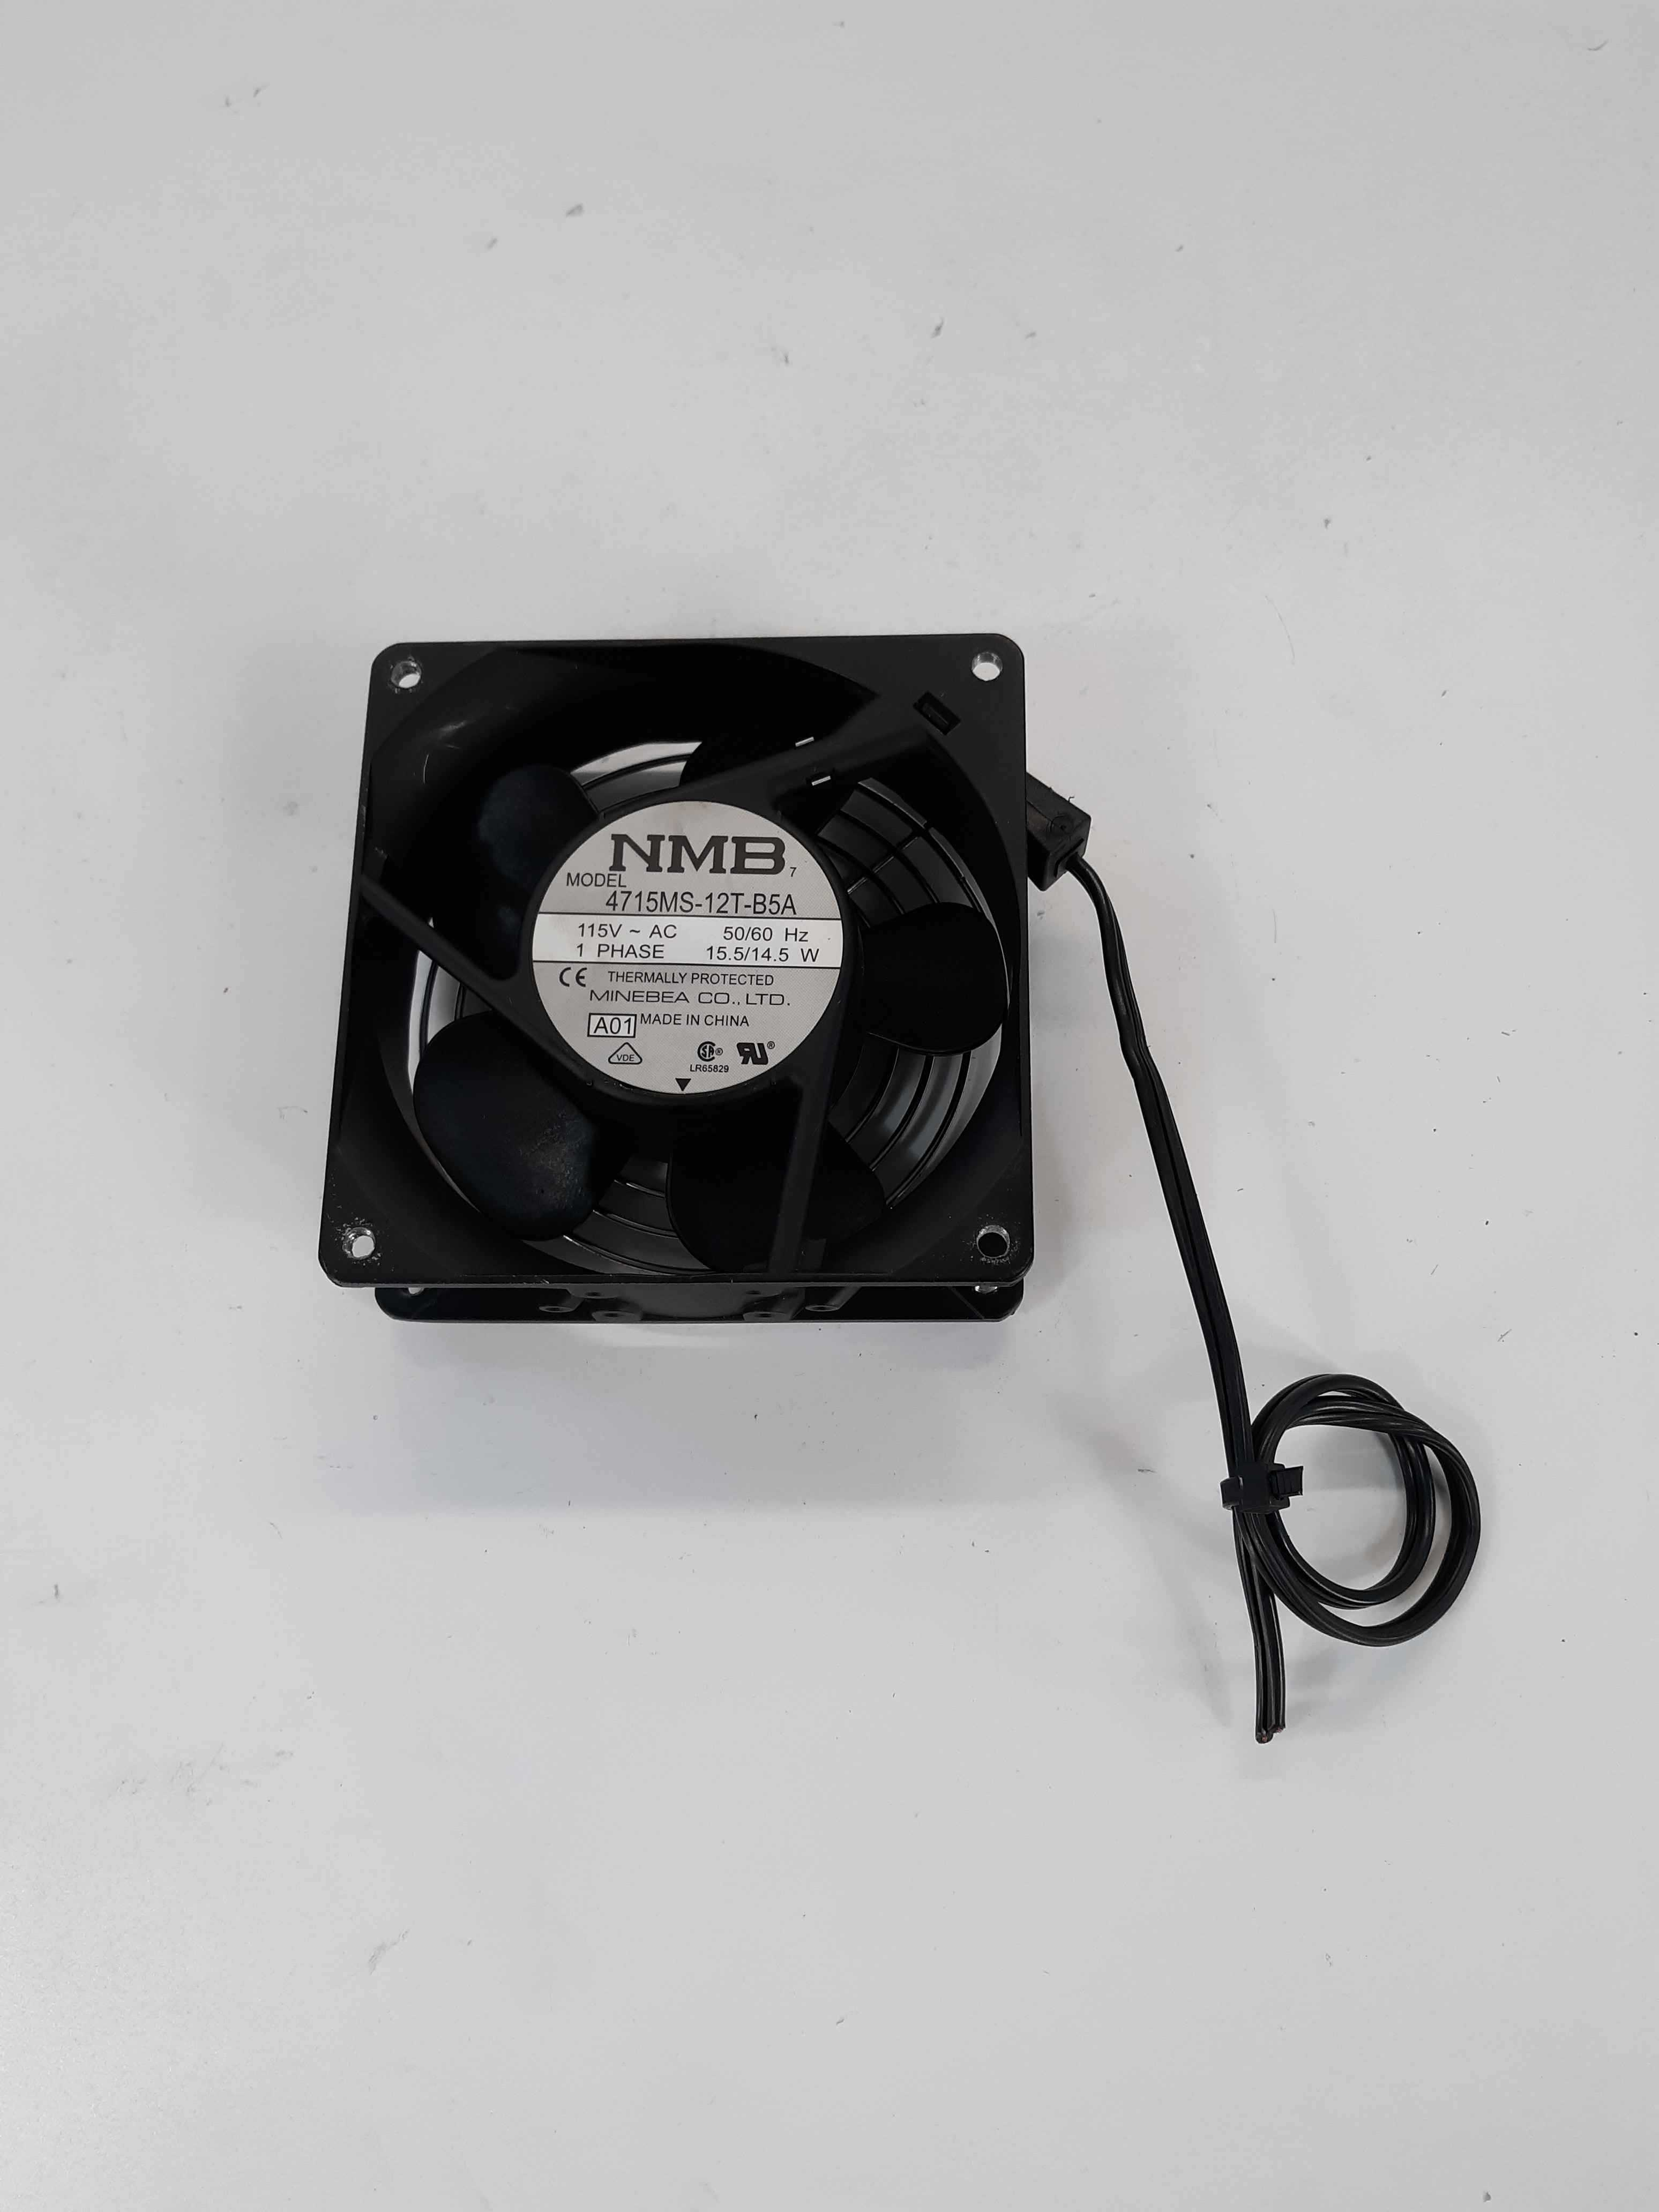 NMB Minebea 4715MS-12T-B5A 115V AC Thermally Protected Fan